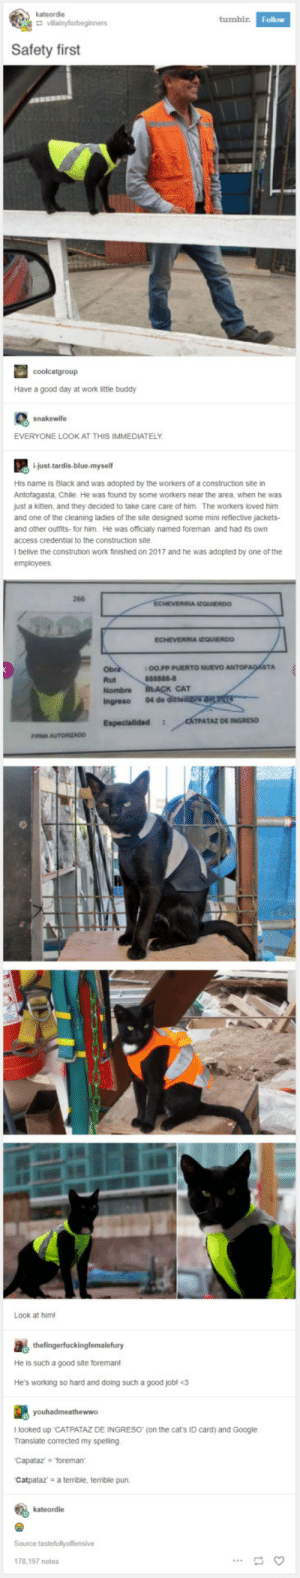 """Cats, Google, and Work: kateordie  tumbl  Follow  Safety first  Have a good day at work little buddy  snakewife  EVERYONE LOOK AT THIS IMMEDIATELY  i-just-tardis-blue-myself  His name is Black and was adopted by the workers of a construction site in  Antofagasta, Chile. He was found by some workers near the area, when he was  just a kitten, and they decided to take care care of him. The workers loved him  and one of the cleaning ladies of the site designed some mini reflective jackets-  and other outfrits- for him. He was officialy named foreman and had its own  access credential to the construction site  l belive the constrution work finished on 2017 and he was adopted by one of the  266  ECHEVERRIA EQUIERDO  :O0PP PUERTO NUEVO  Rut  CAT  Ingreso 04 de  TPATAZ DE INGRES0  Look at him  He is such a good site foreman  He's working so hard and doing such a good jobl <3  I looked up """"CATPATAZ DE INGRESO (on the cat's ID card) and Google  Translate corrected my spelling  Capataz forema  Catpataz a terrible, terrible pun.  kateordie  178,197 notes Foreman Black"""